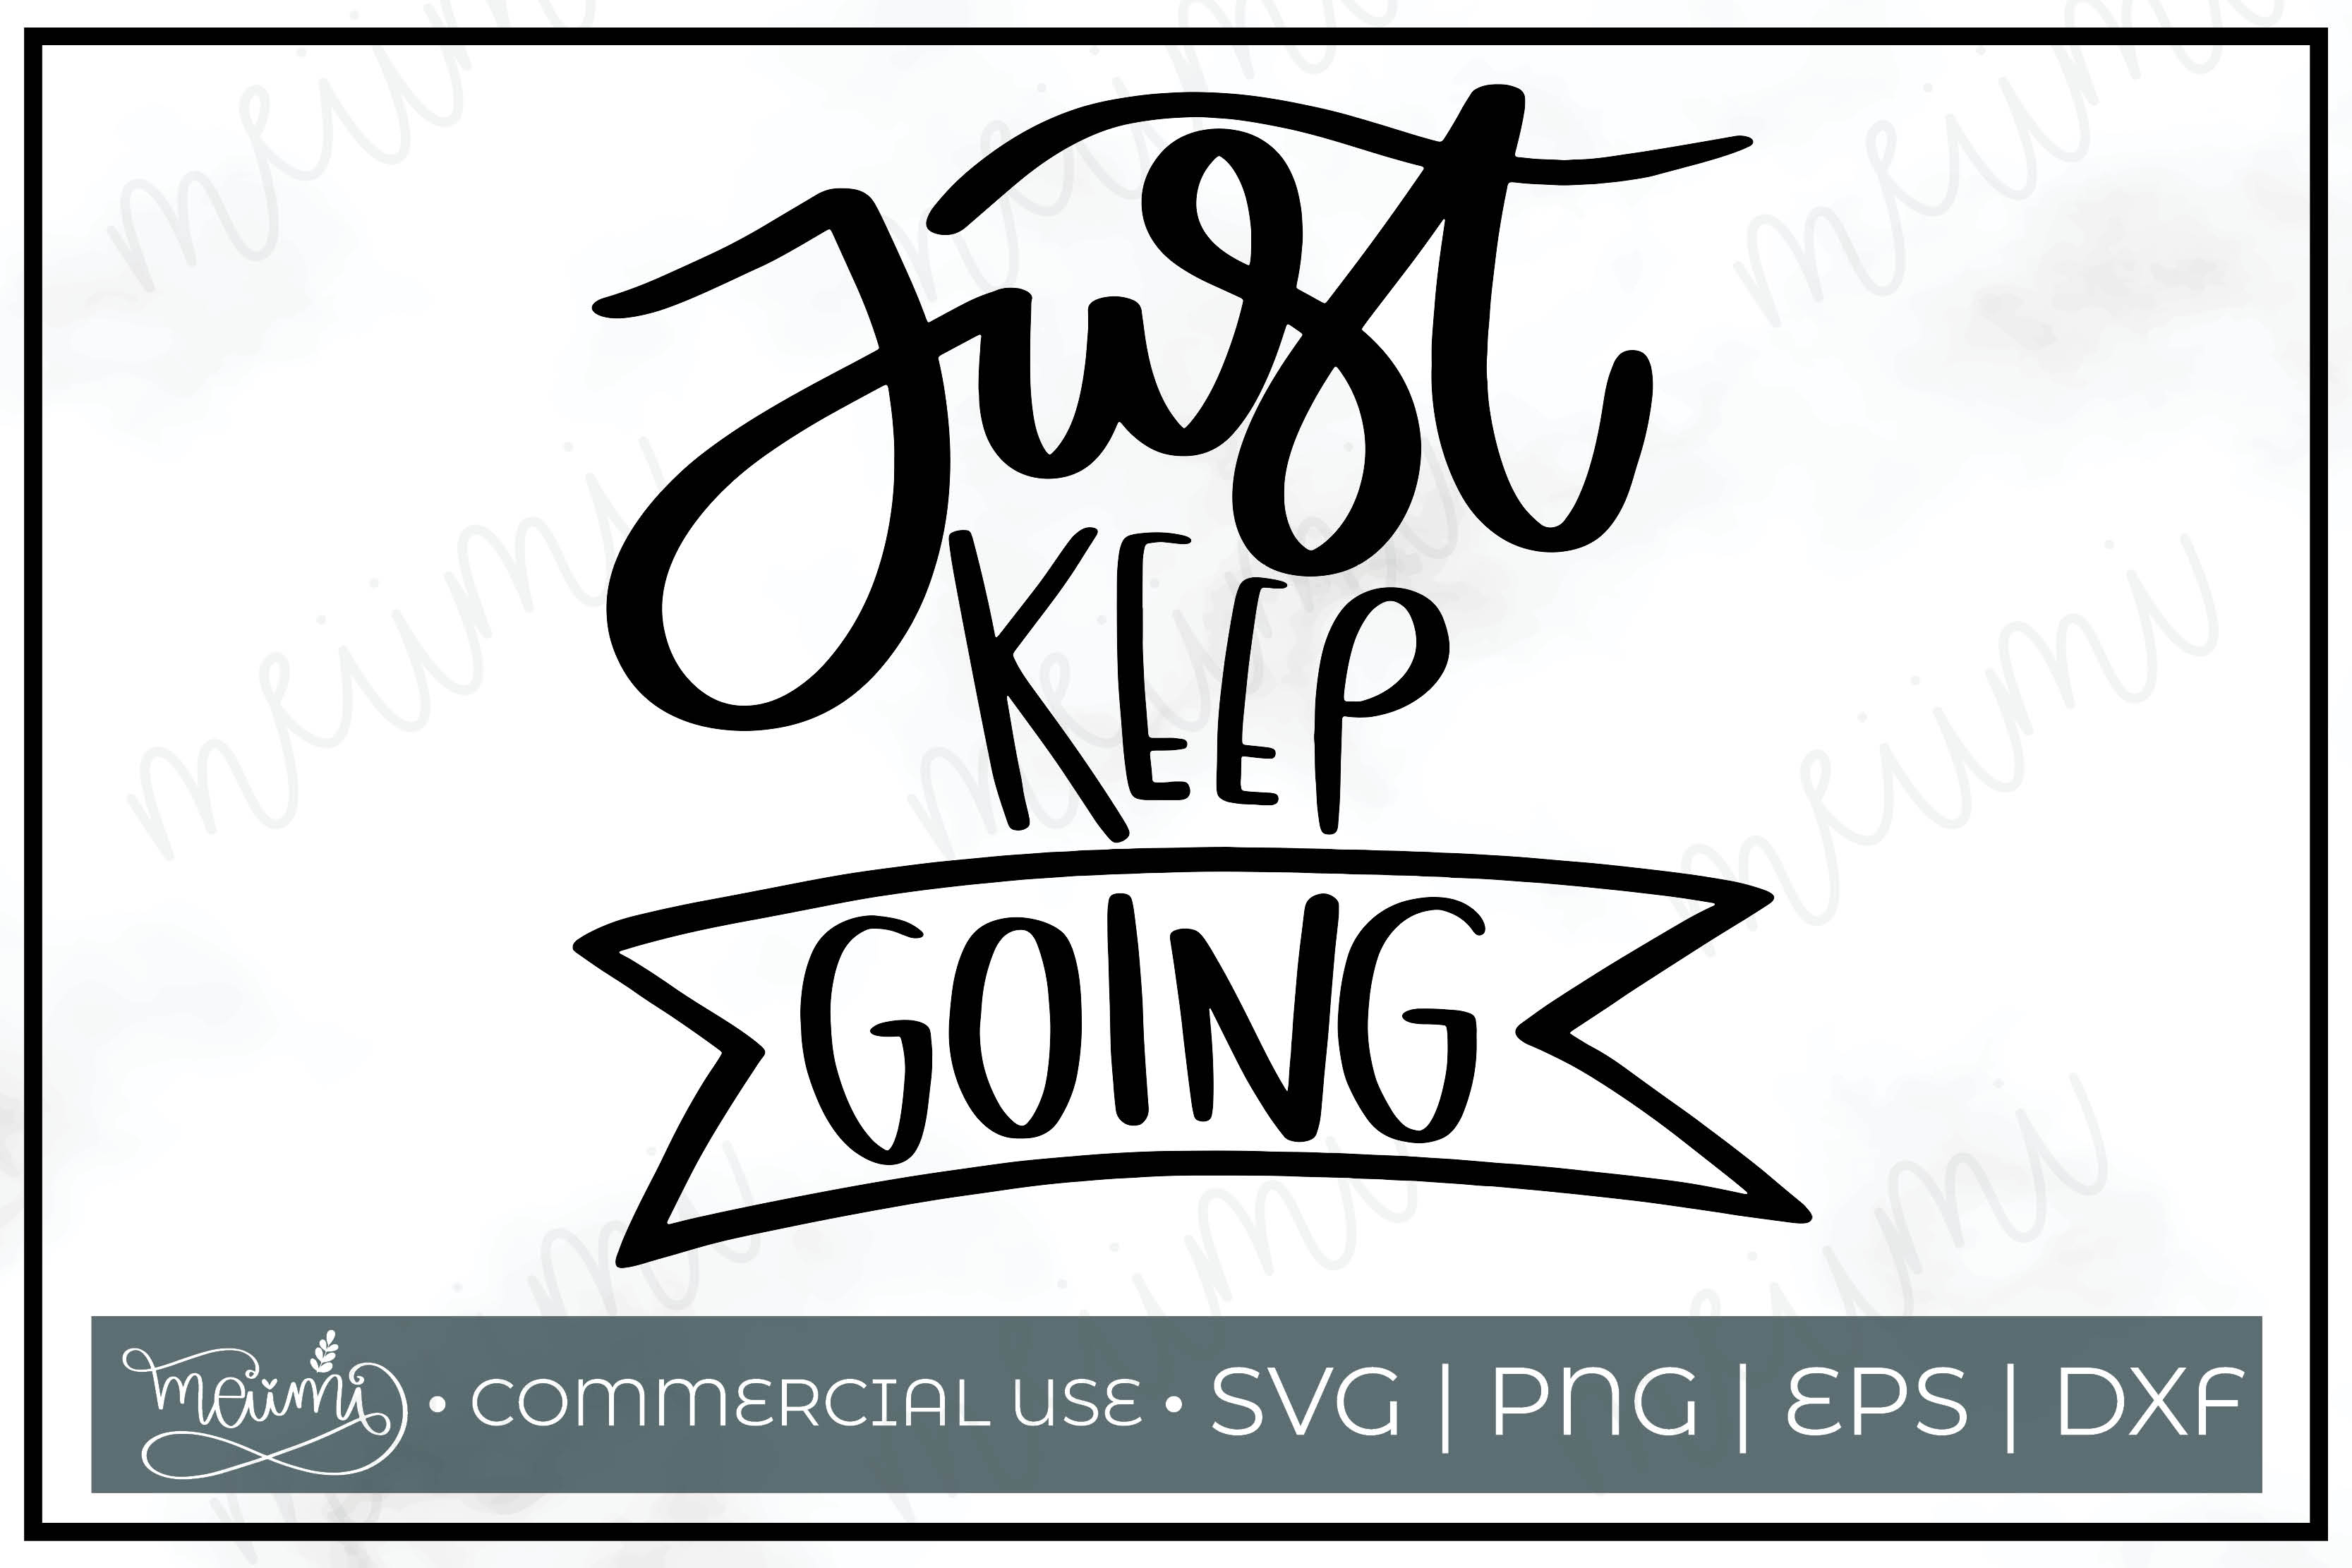 Download Free Just Keep Going Cut File Graphic By Meiimi Creative Fabrica for Cricut Explore, Silhouette and other cutting machines.